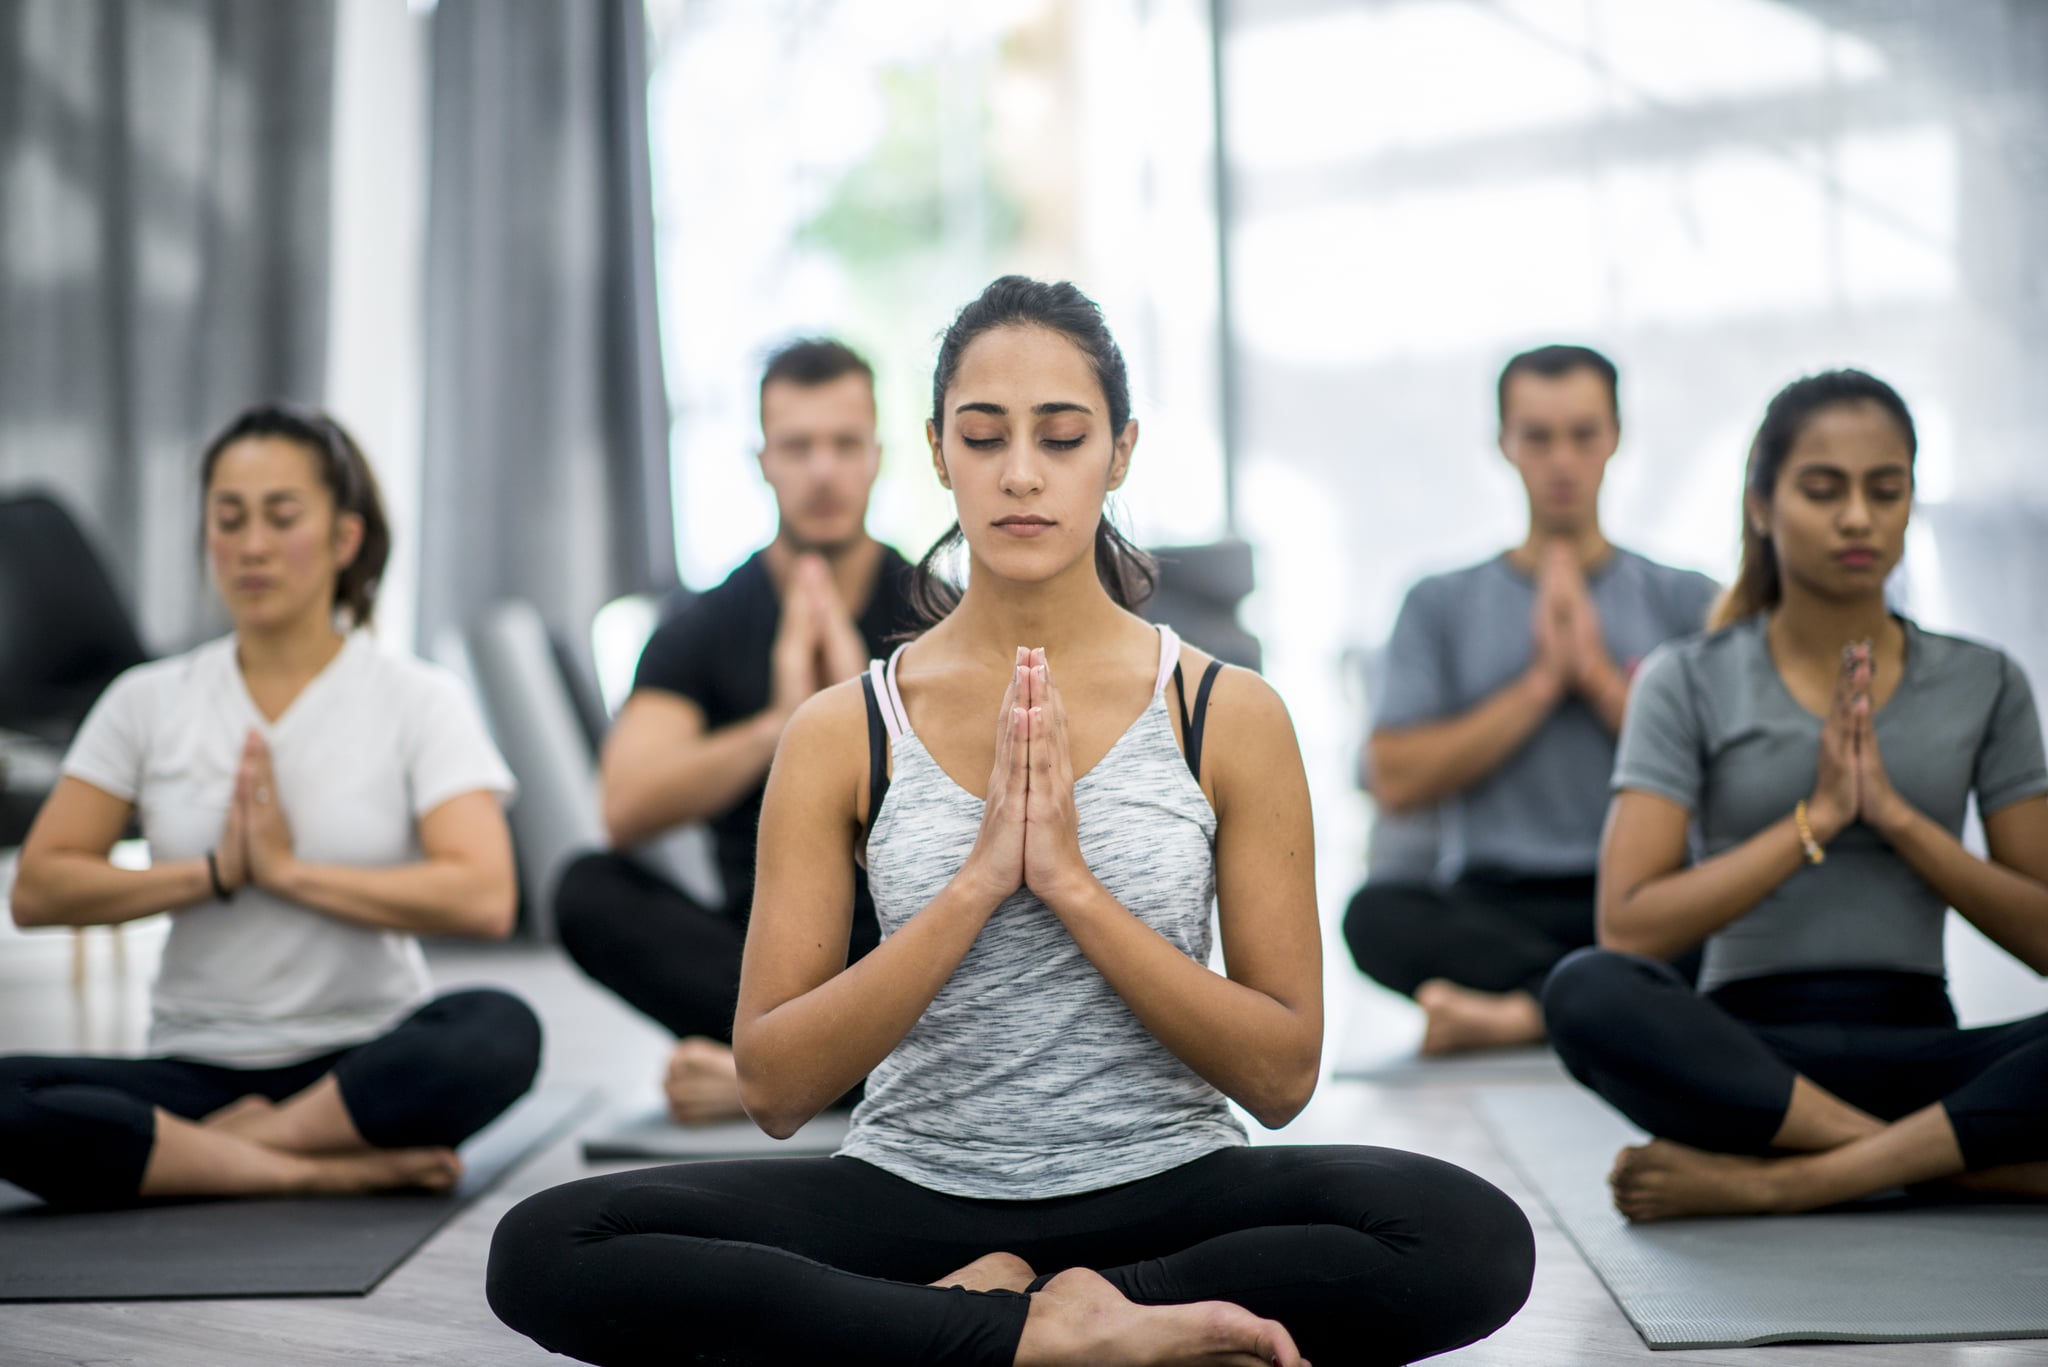 A group of adults are meditating together. They are sitting on yoga mats with their eyes closed and hands clasped together. They are in a health club.